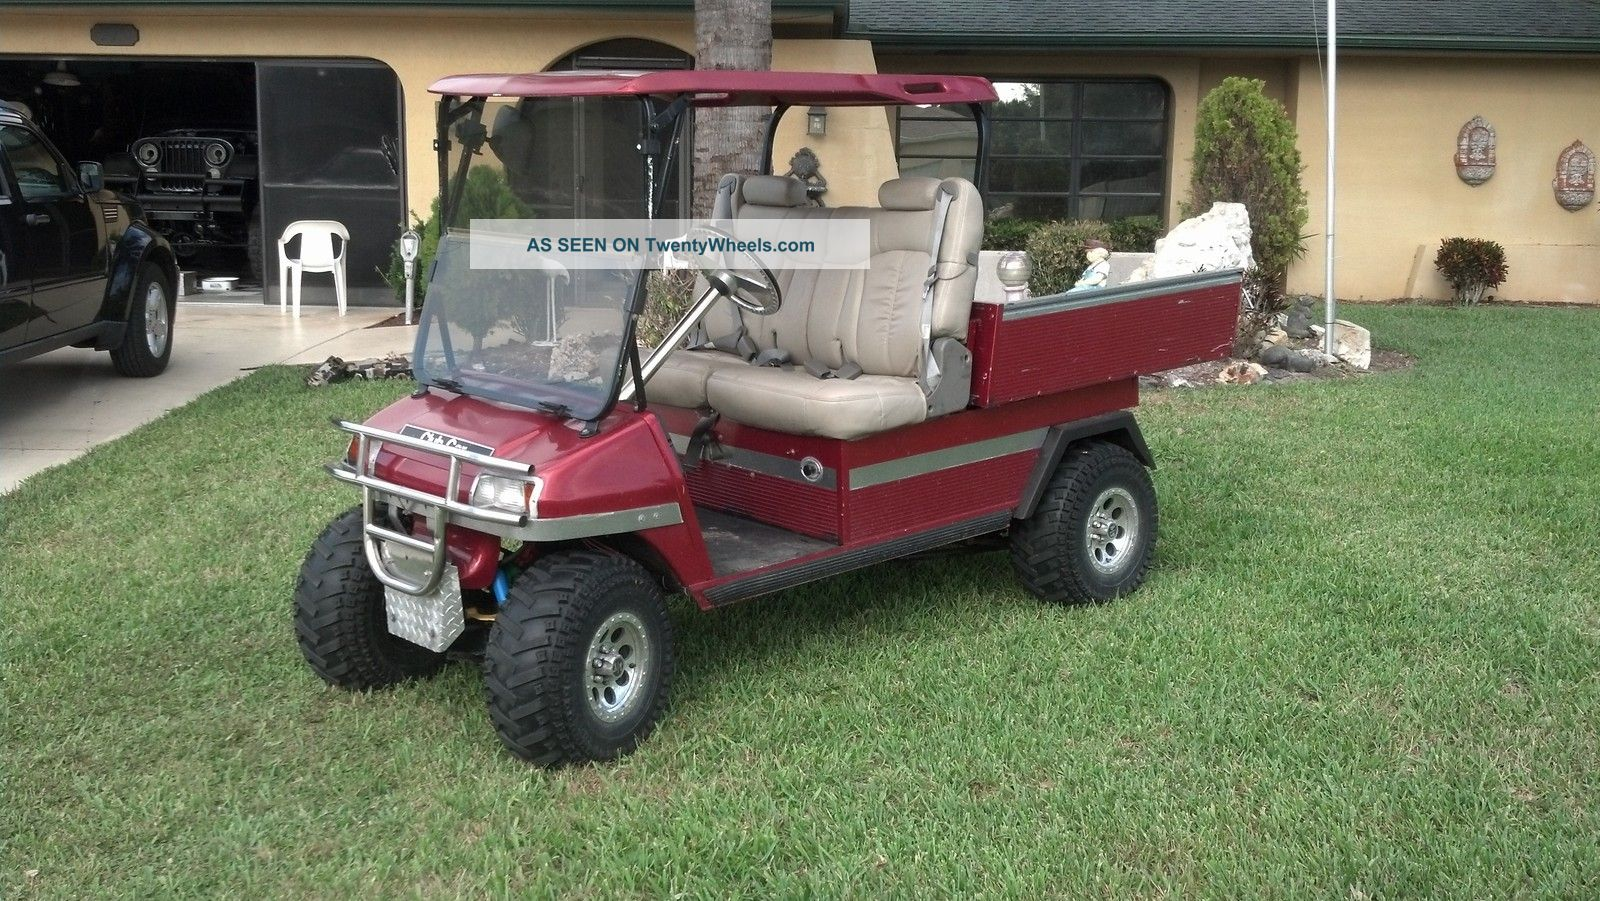 Carryall Utility Cart Atv With Gas Honda Engine And Dump Bed Utility Vehicles photo